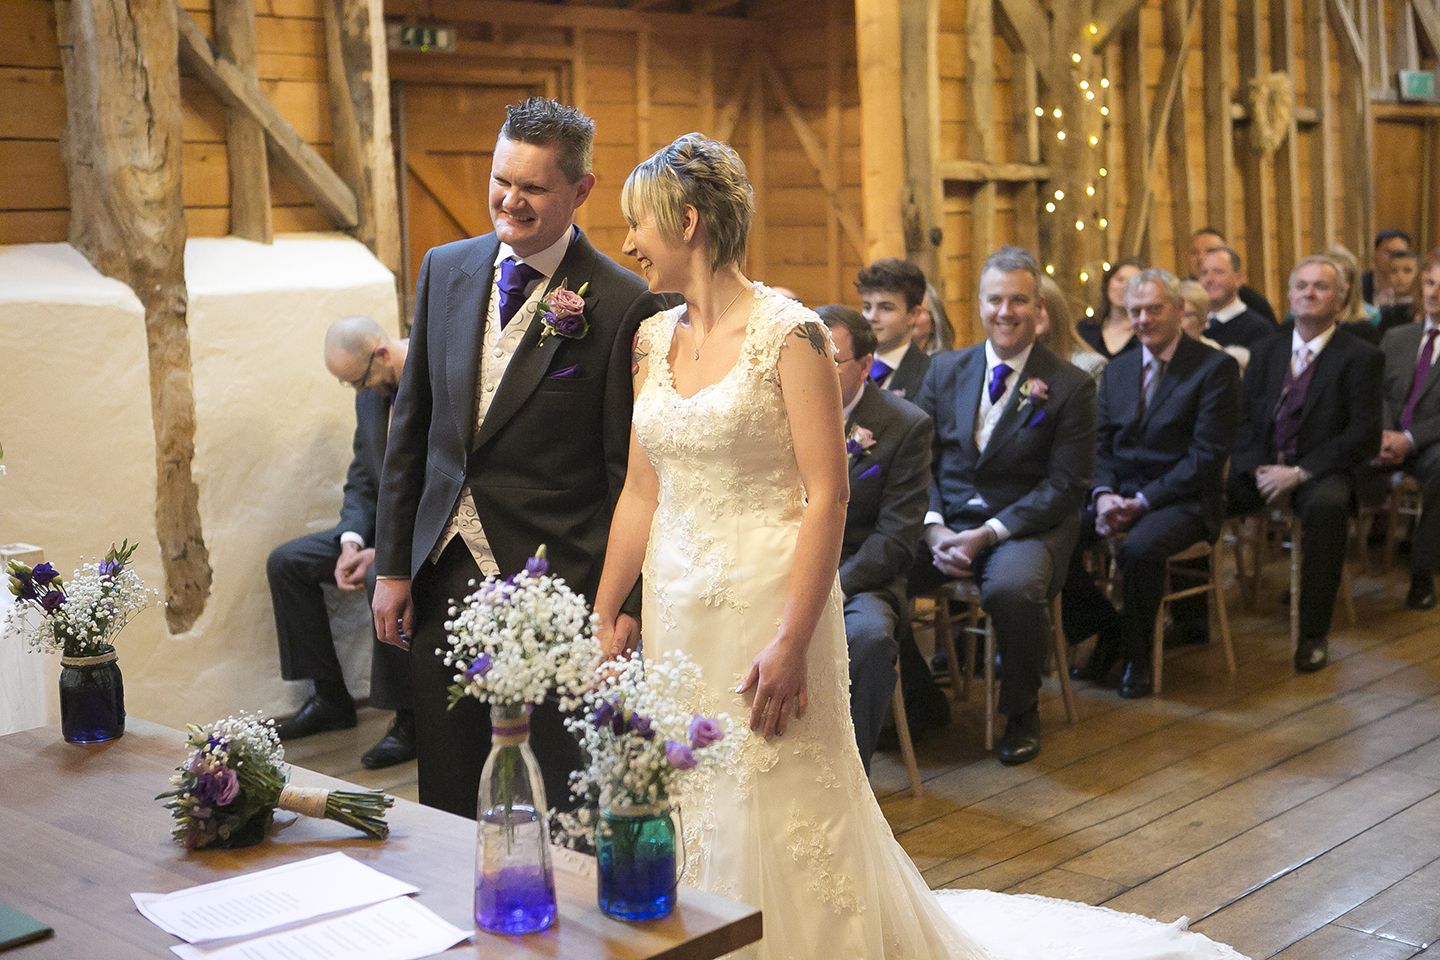 The Rickety Barn is the most amazing wedding ceremony venue in Cambridgeshire